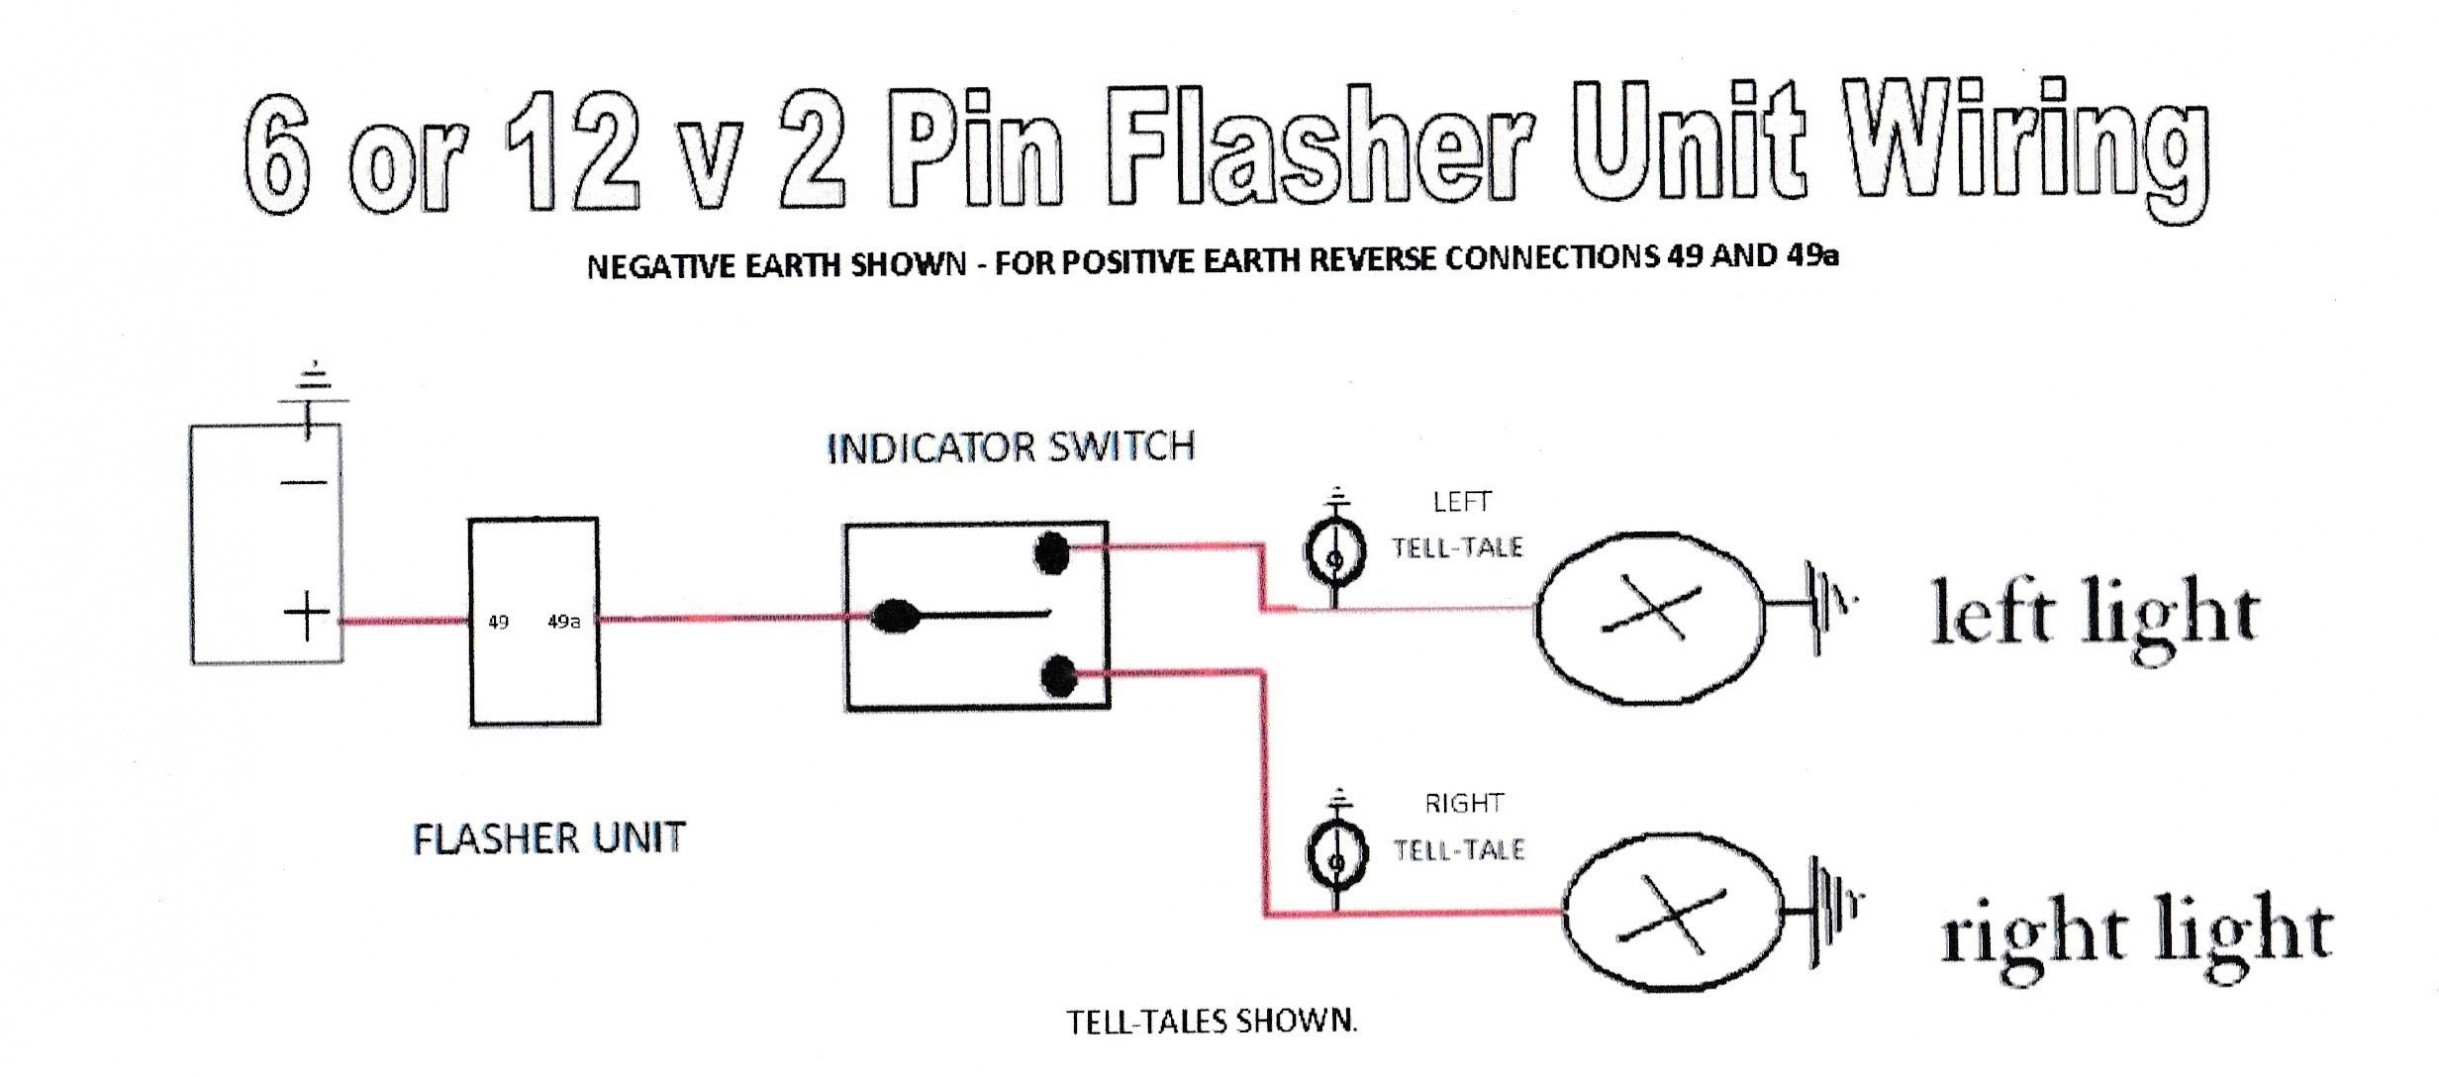 3 Post Flasher Diagram Three Pole Flasher Wiring Diagram Diagram Base Website Of 3 Post Flasher Diagram